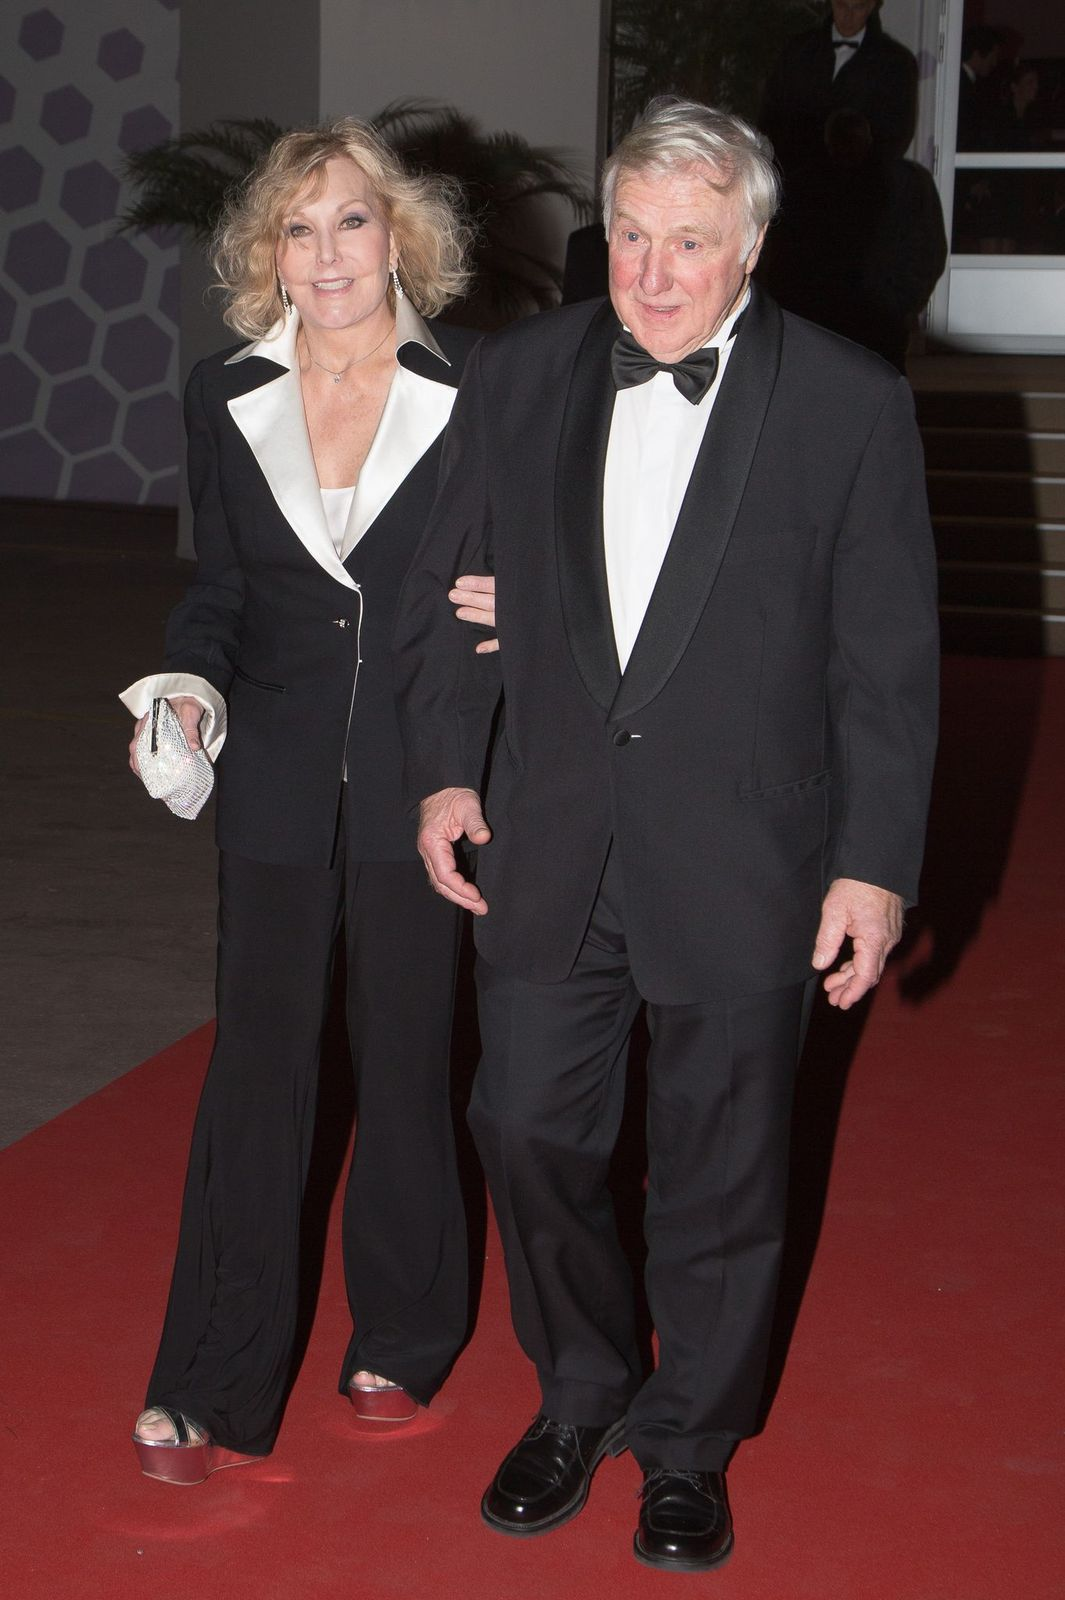 """Kim Novak and Robert Malloy leaving the """"Agora""""dinner during the 66th Annual Cannes Film Festival on May 25, 2013, in Cannes, France   Photo:Marc Piasecki/FilmMagic/Getty Images"""